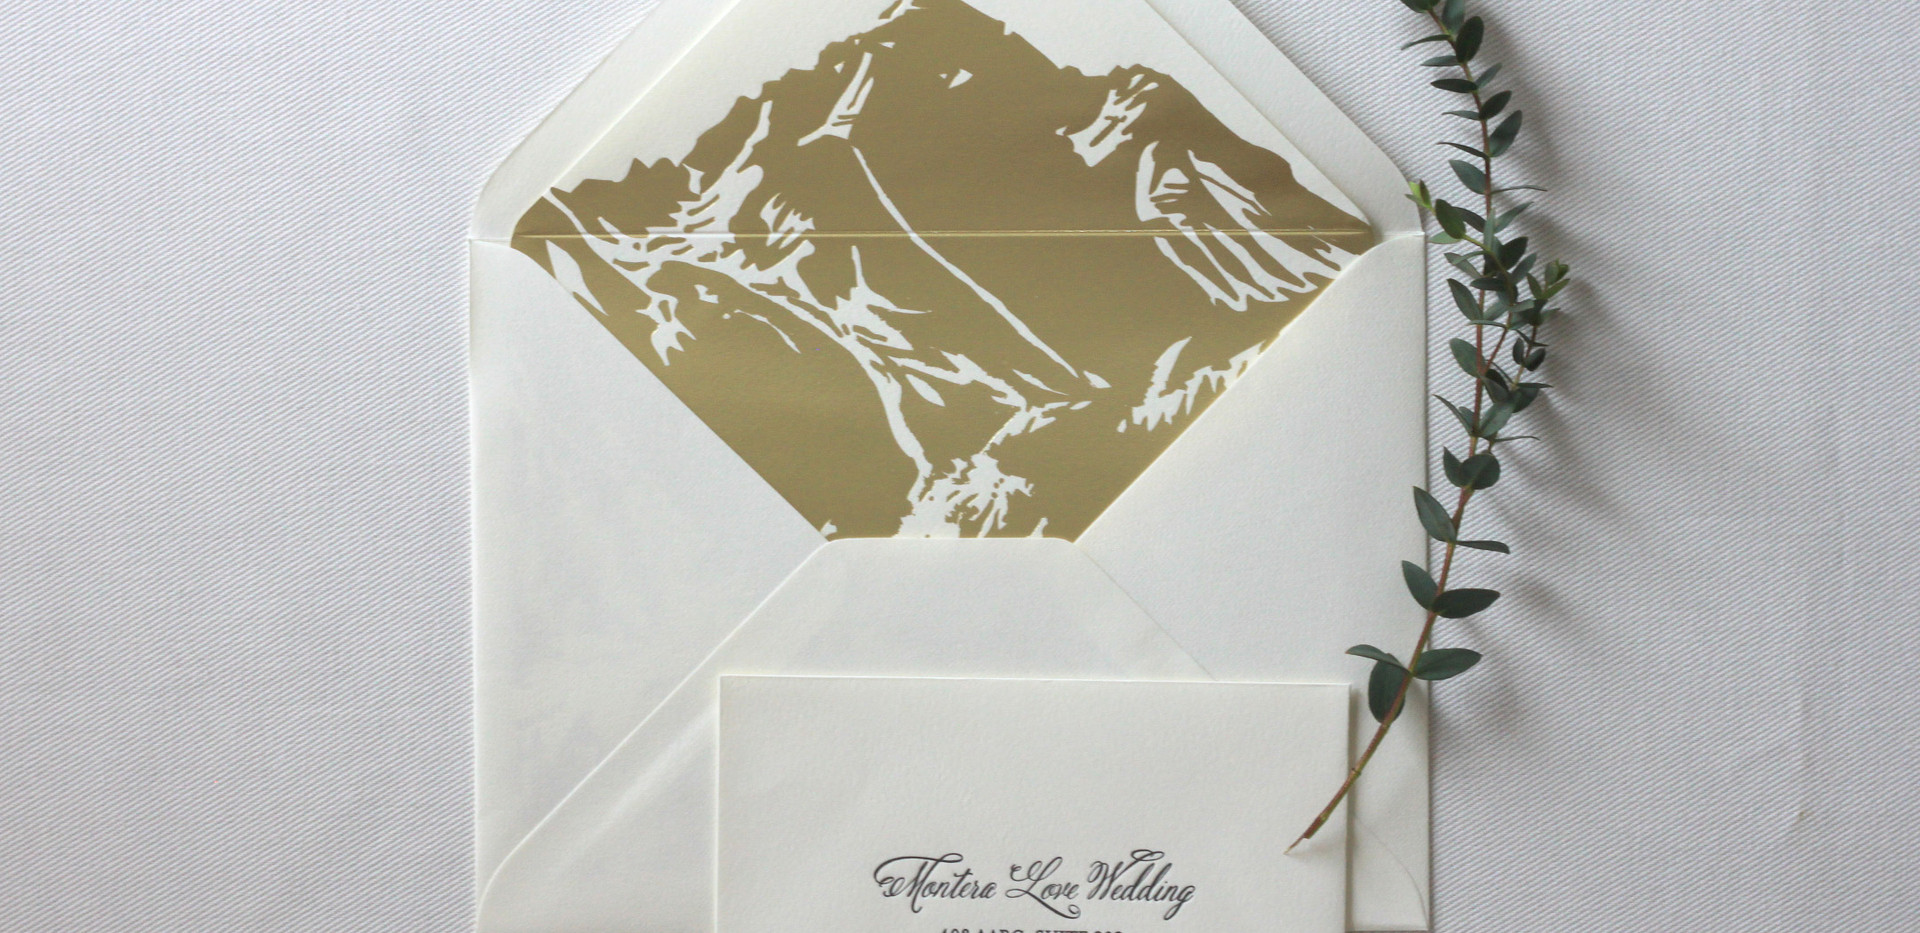 Aspen Love Wedding Invitation Envelopes